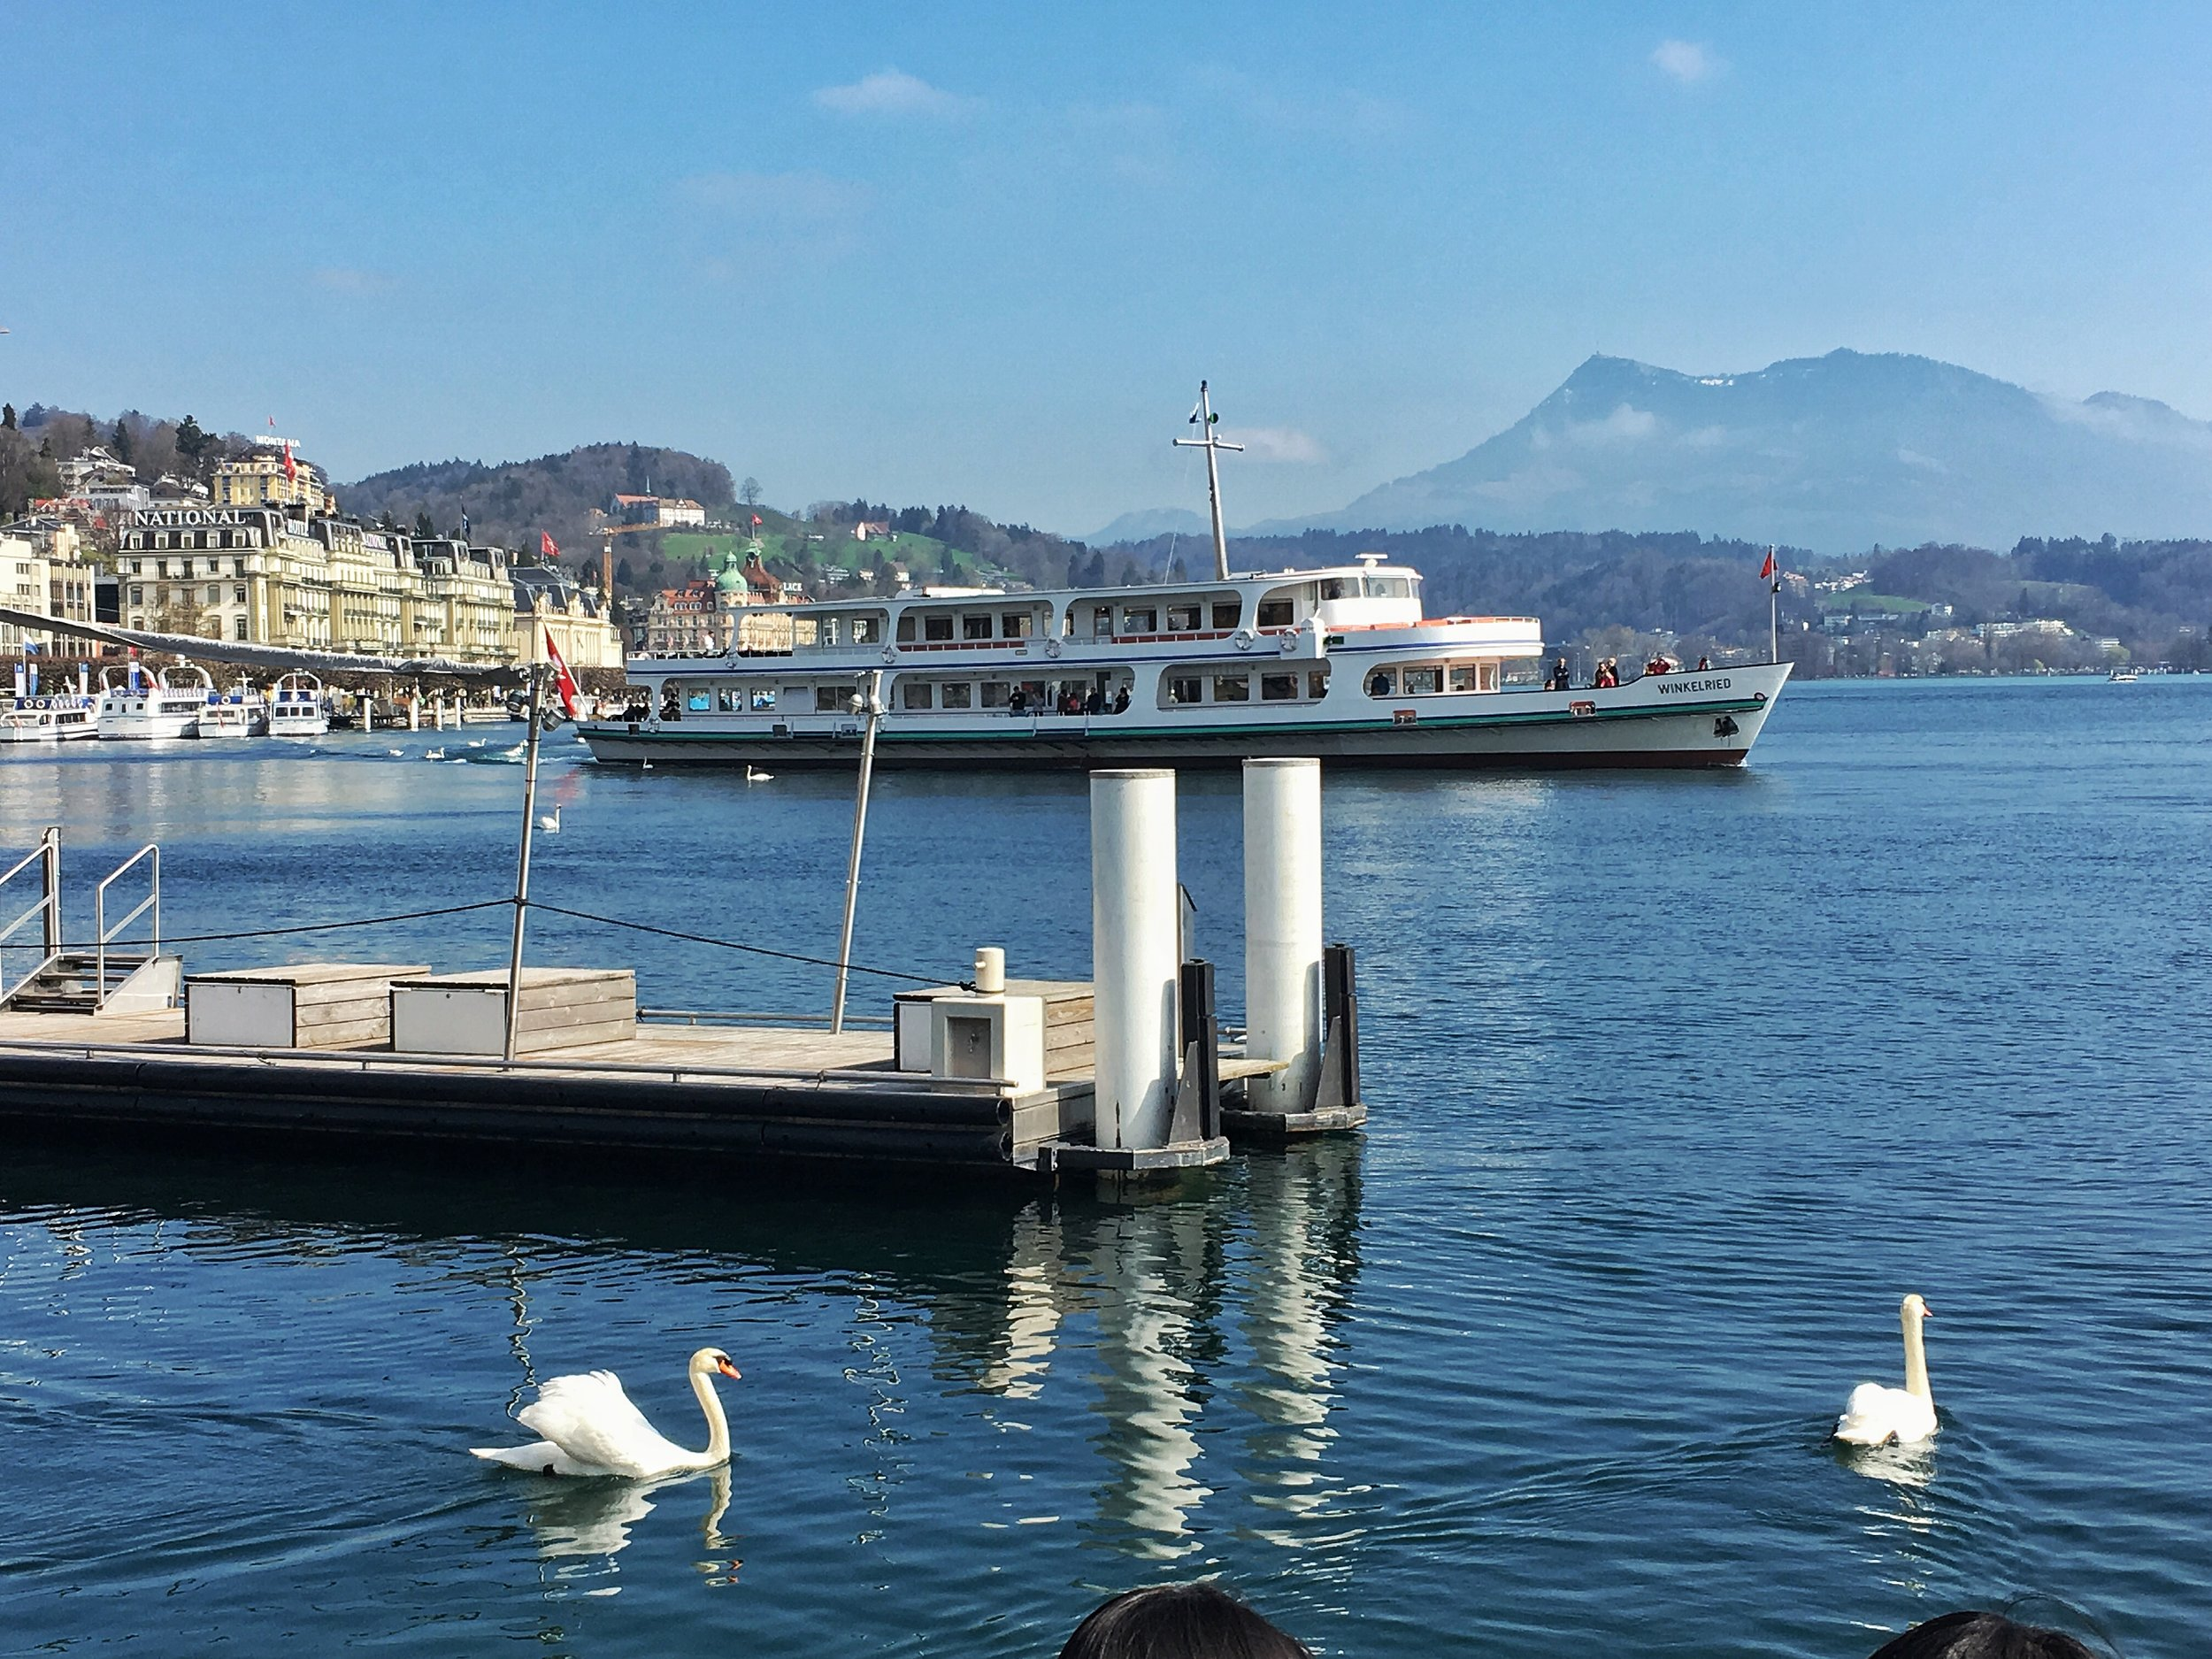 No visit is complete without a cruise on  Lake Luzern  (officially the Vierwaldstättersee). Numerous 100+ year-old steam ships are available for just this purpose. The lake itself is a lot bigger than you'd expect and you can easily enjoy a several hour boat cruise to the other end and back.